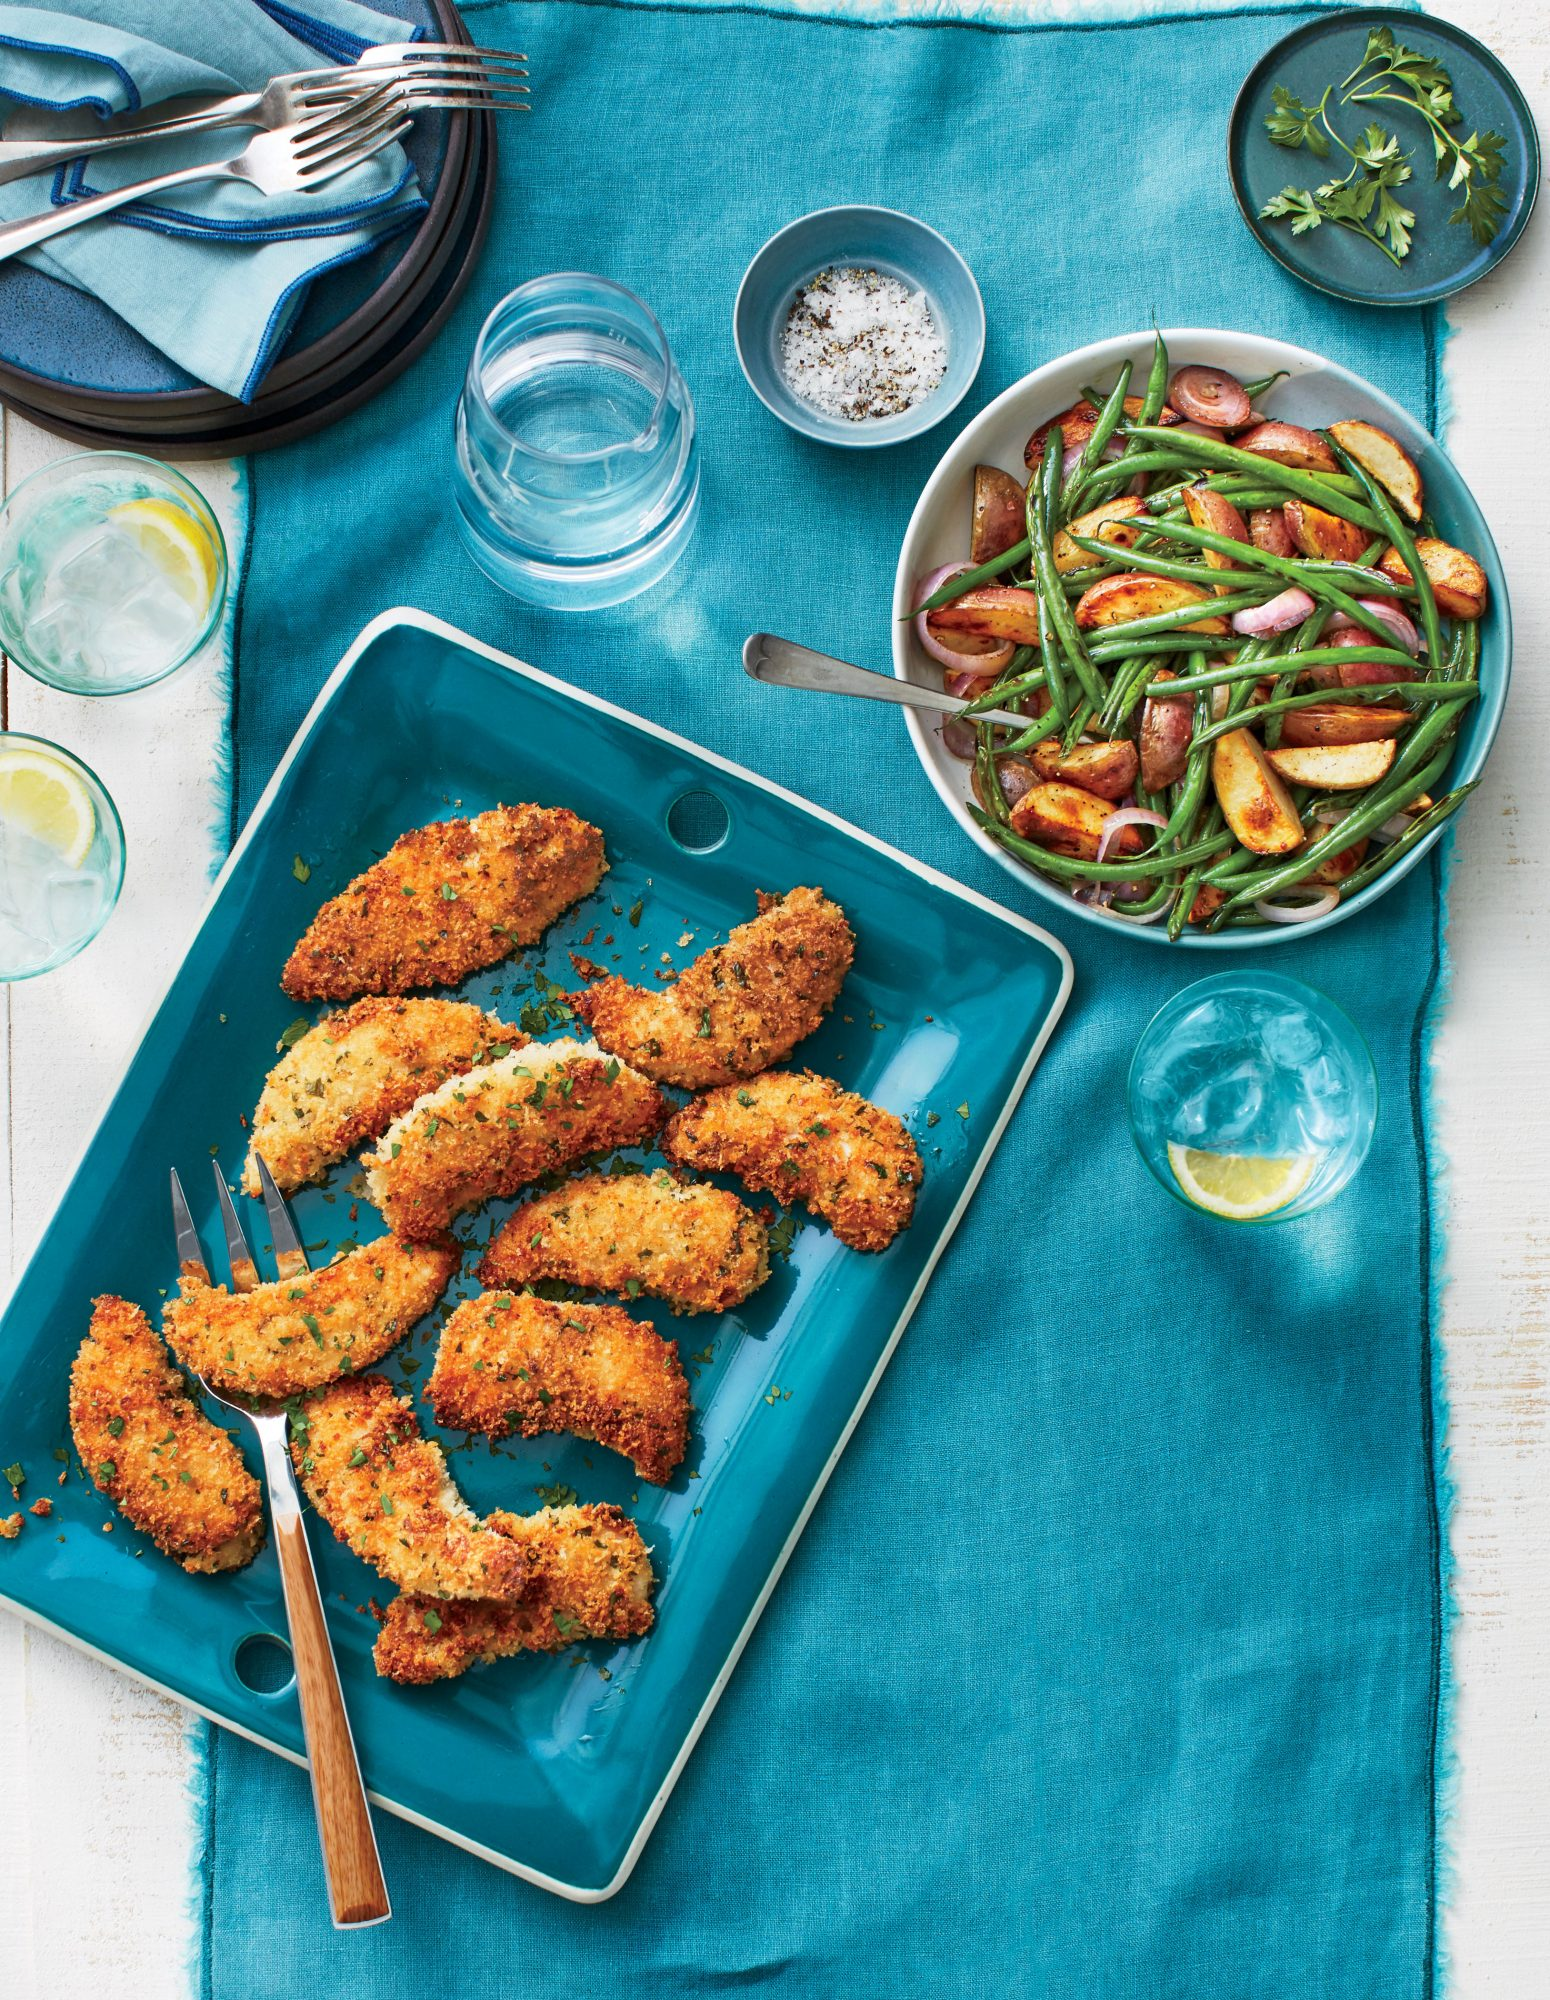 Buttermilk Chicken Tenders with Roasted Potatoes and Green Beans Recipe Southern Living